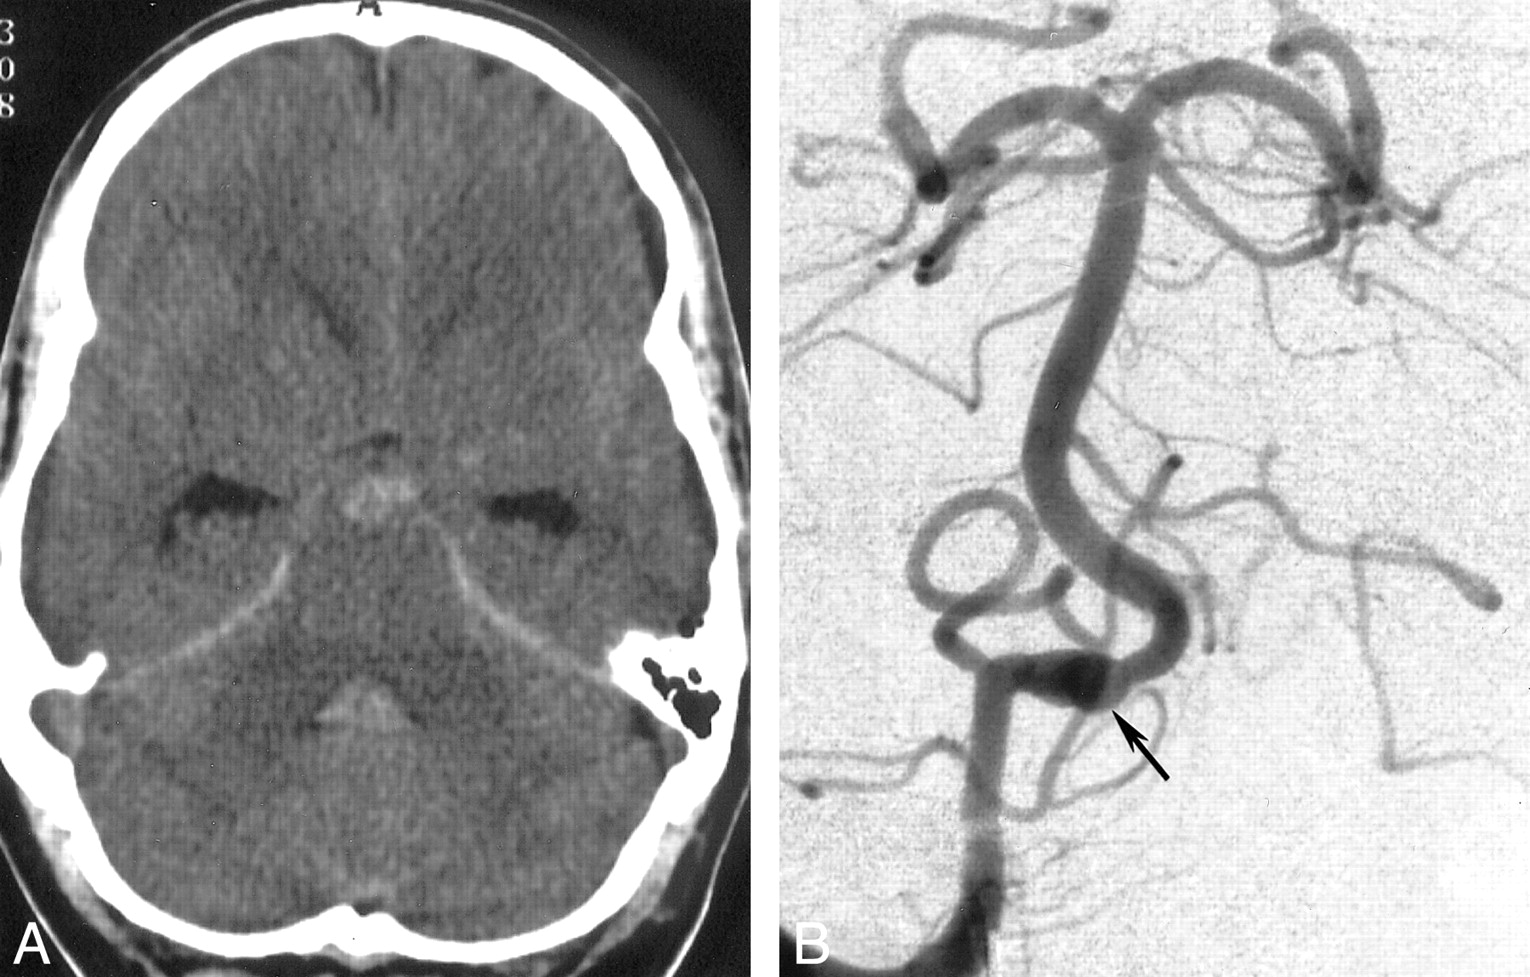 Treatment Of A Ruptured Dissecting Vertebral Artery Aneurysm With